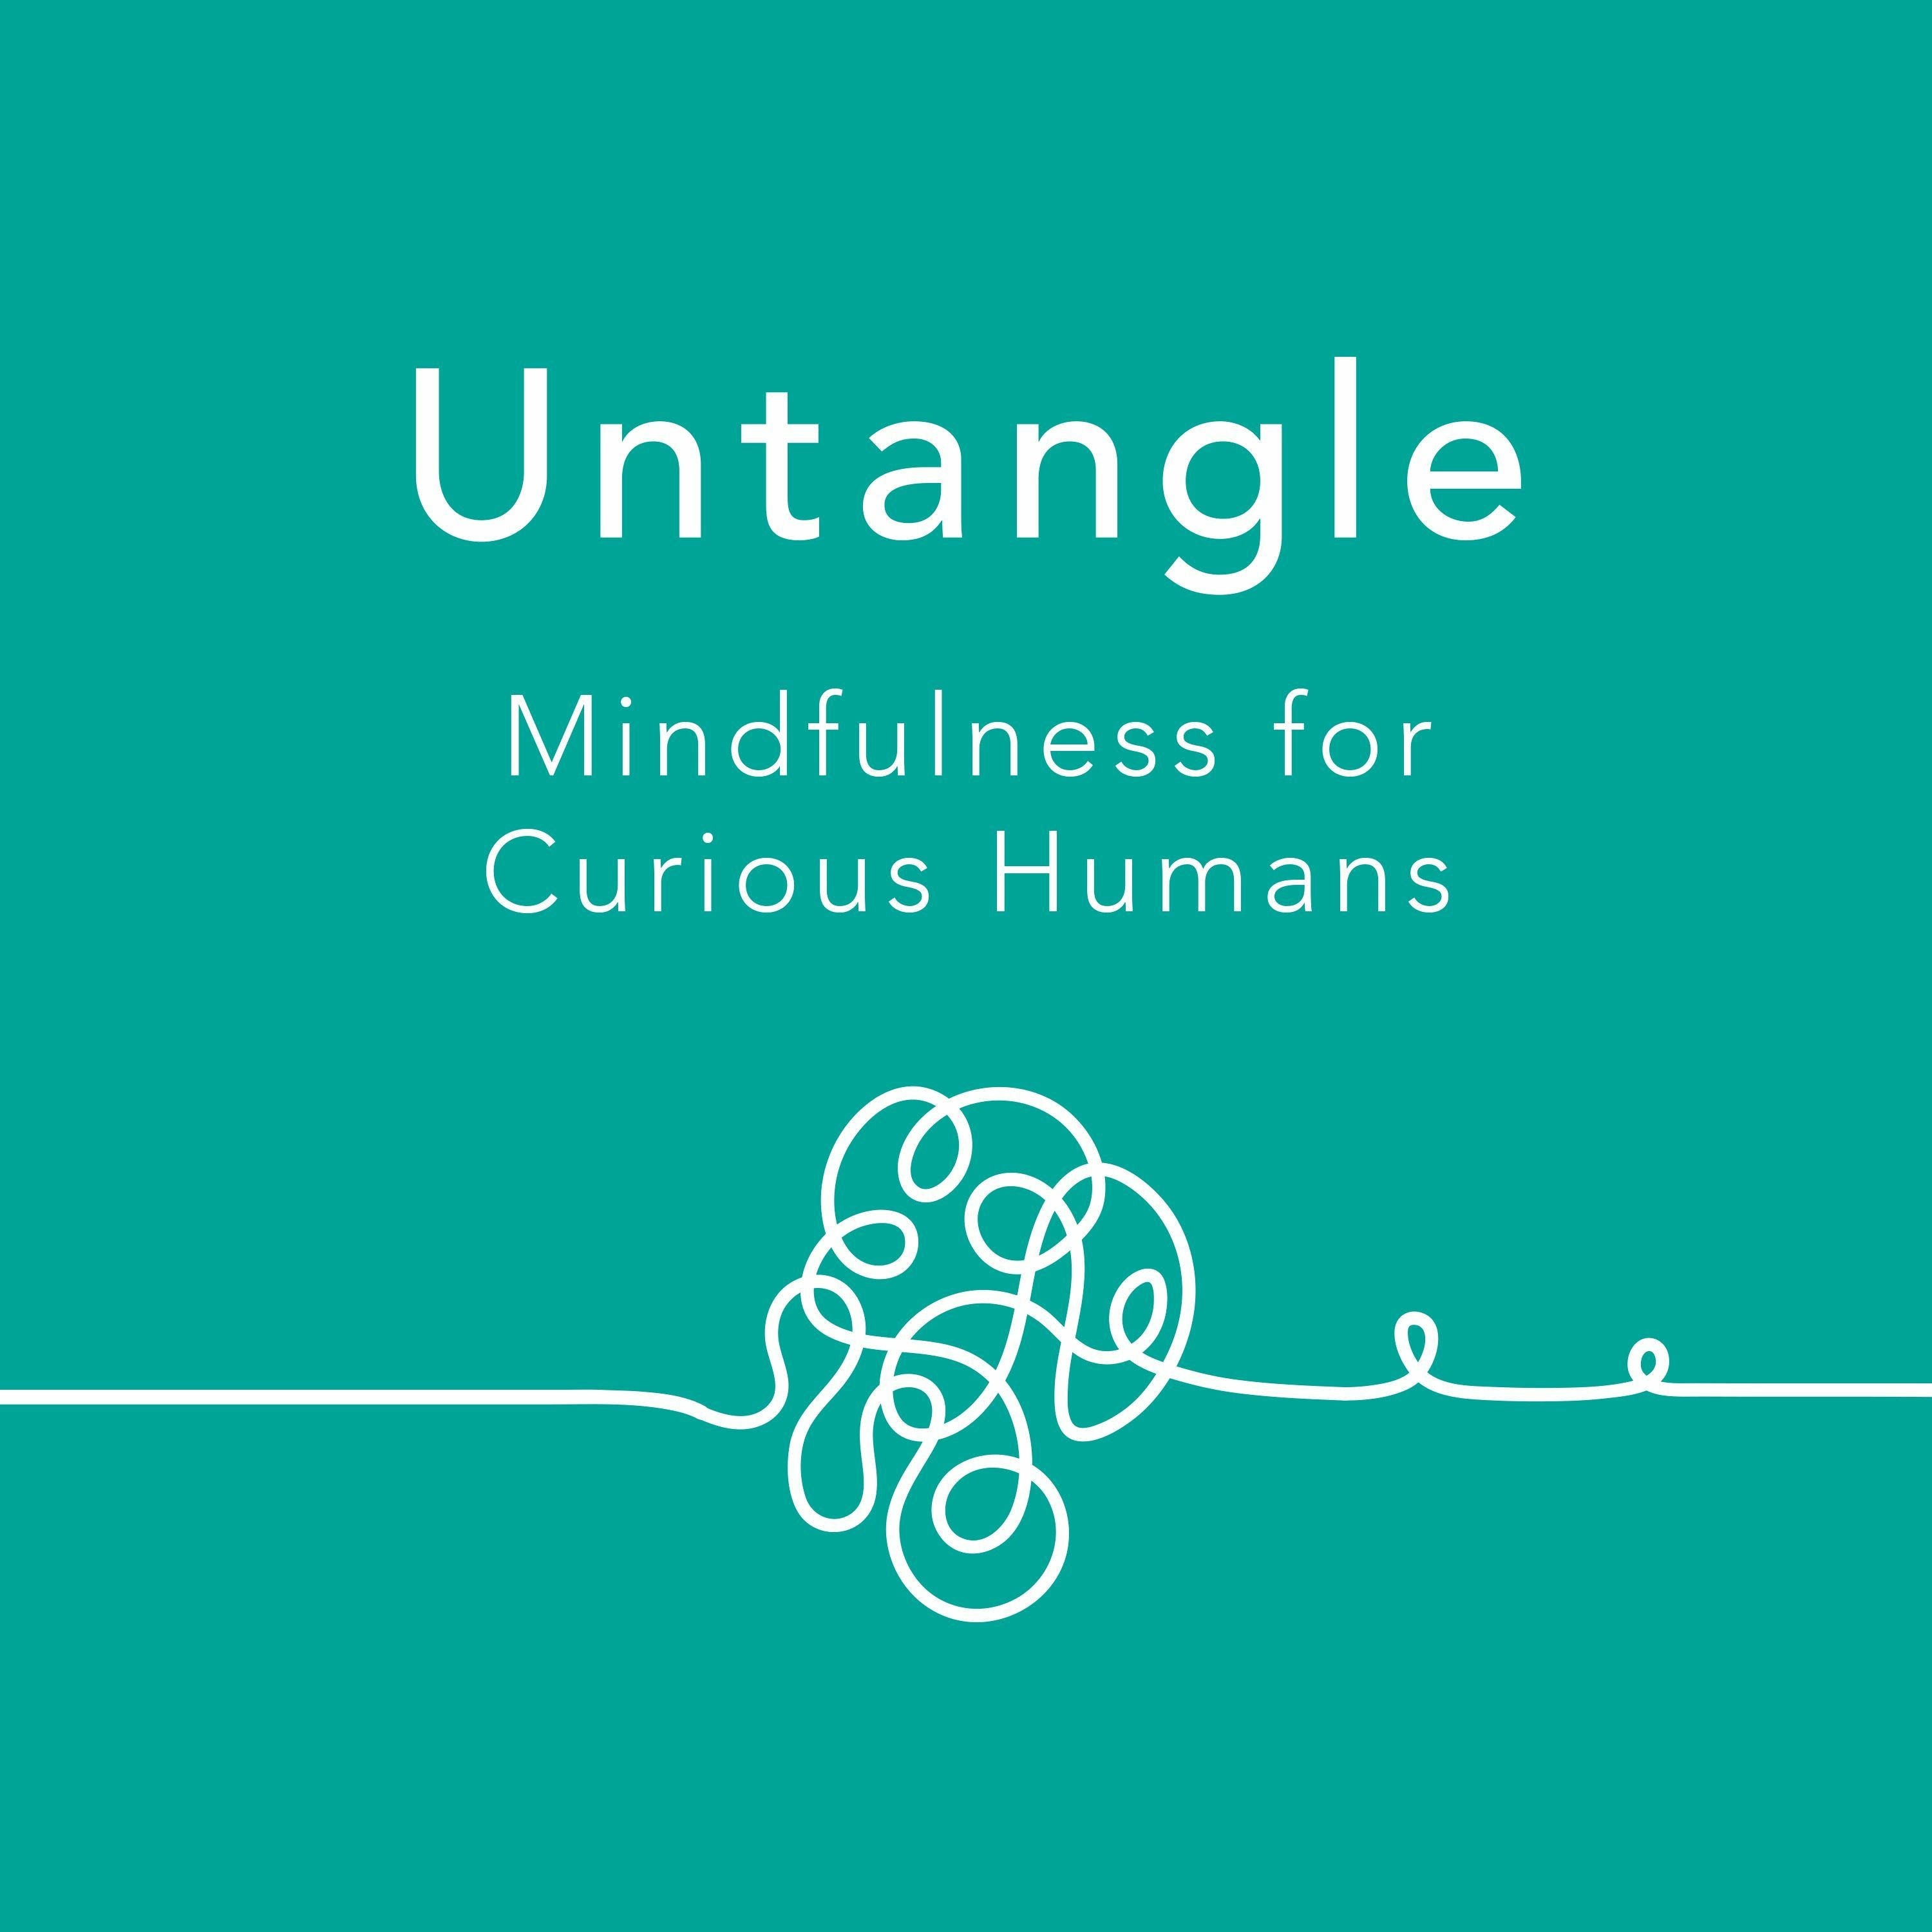 Patricia Karpas - The Untangle 2020 Top Five and a Meditation to Welcome 2021